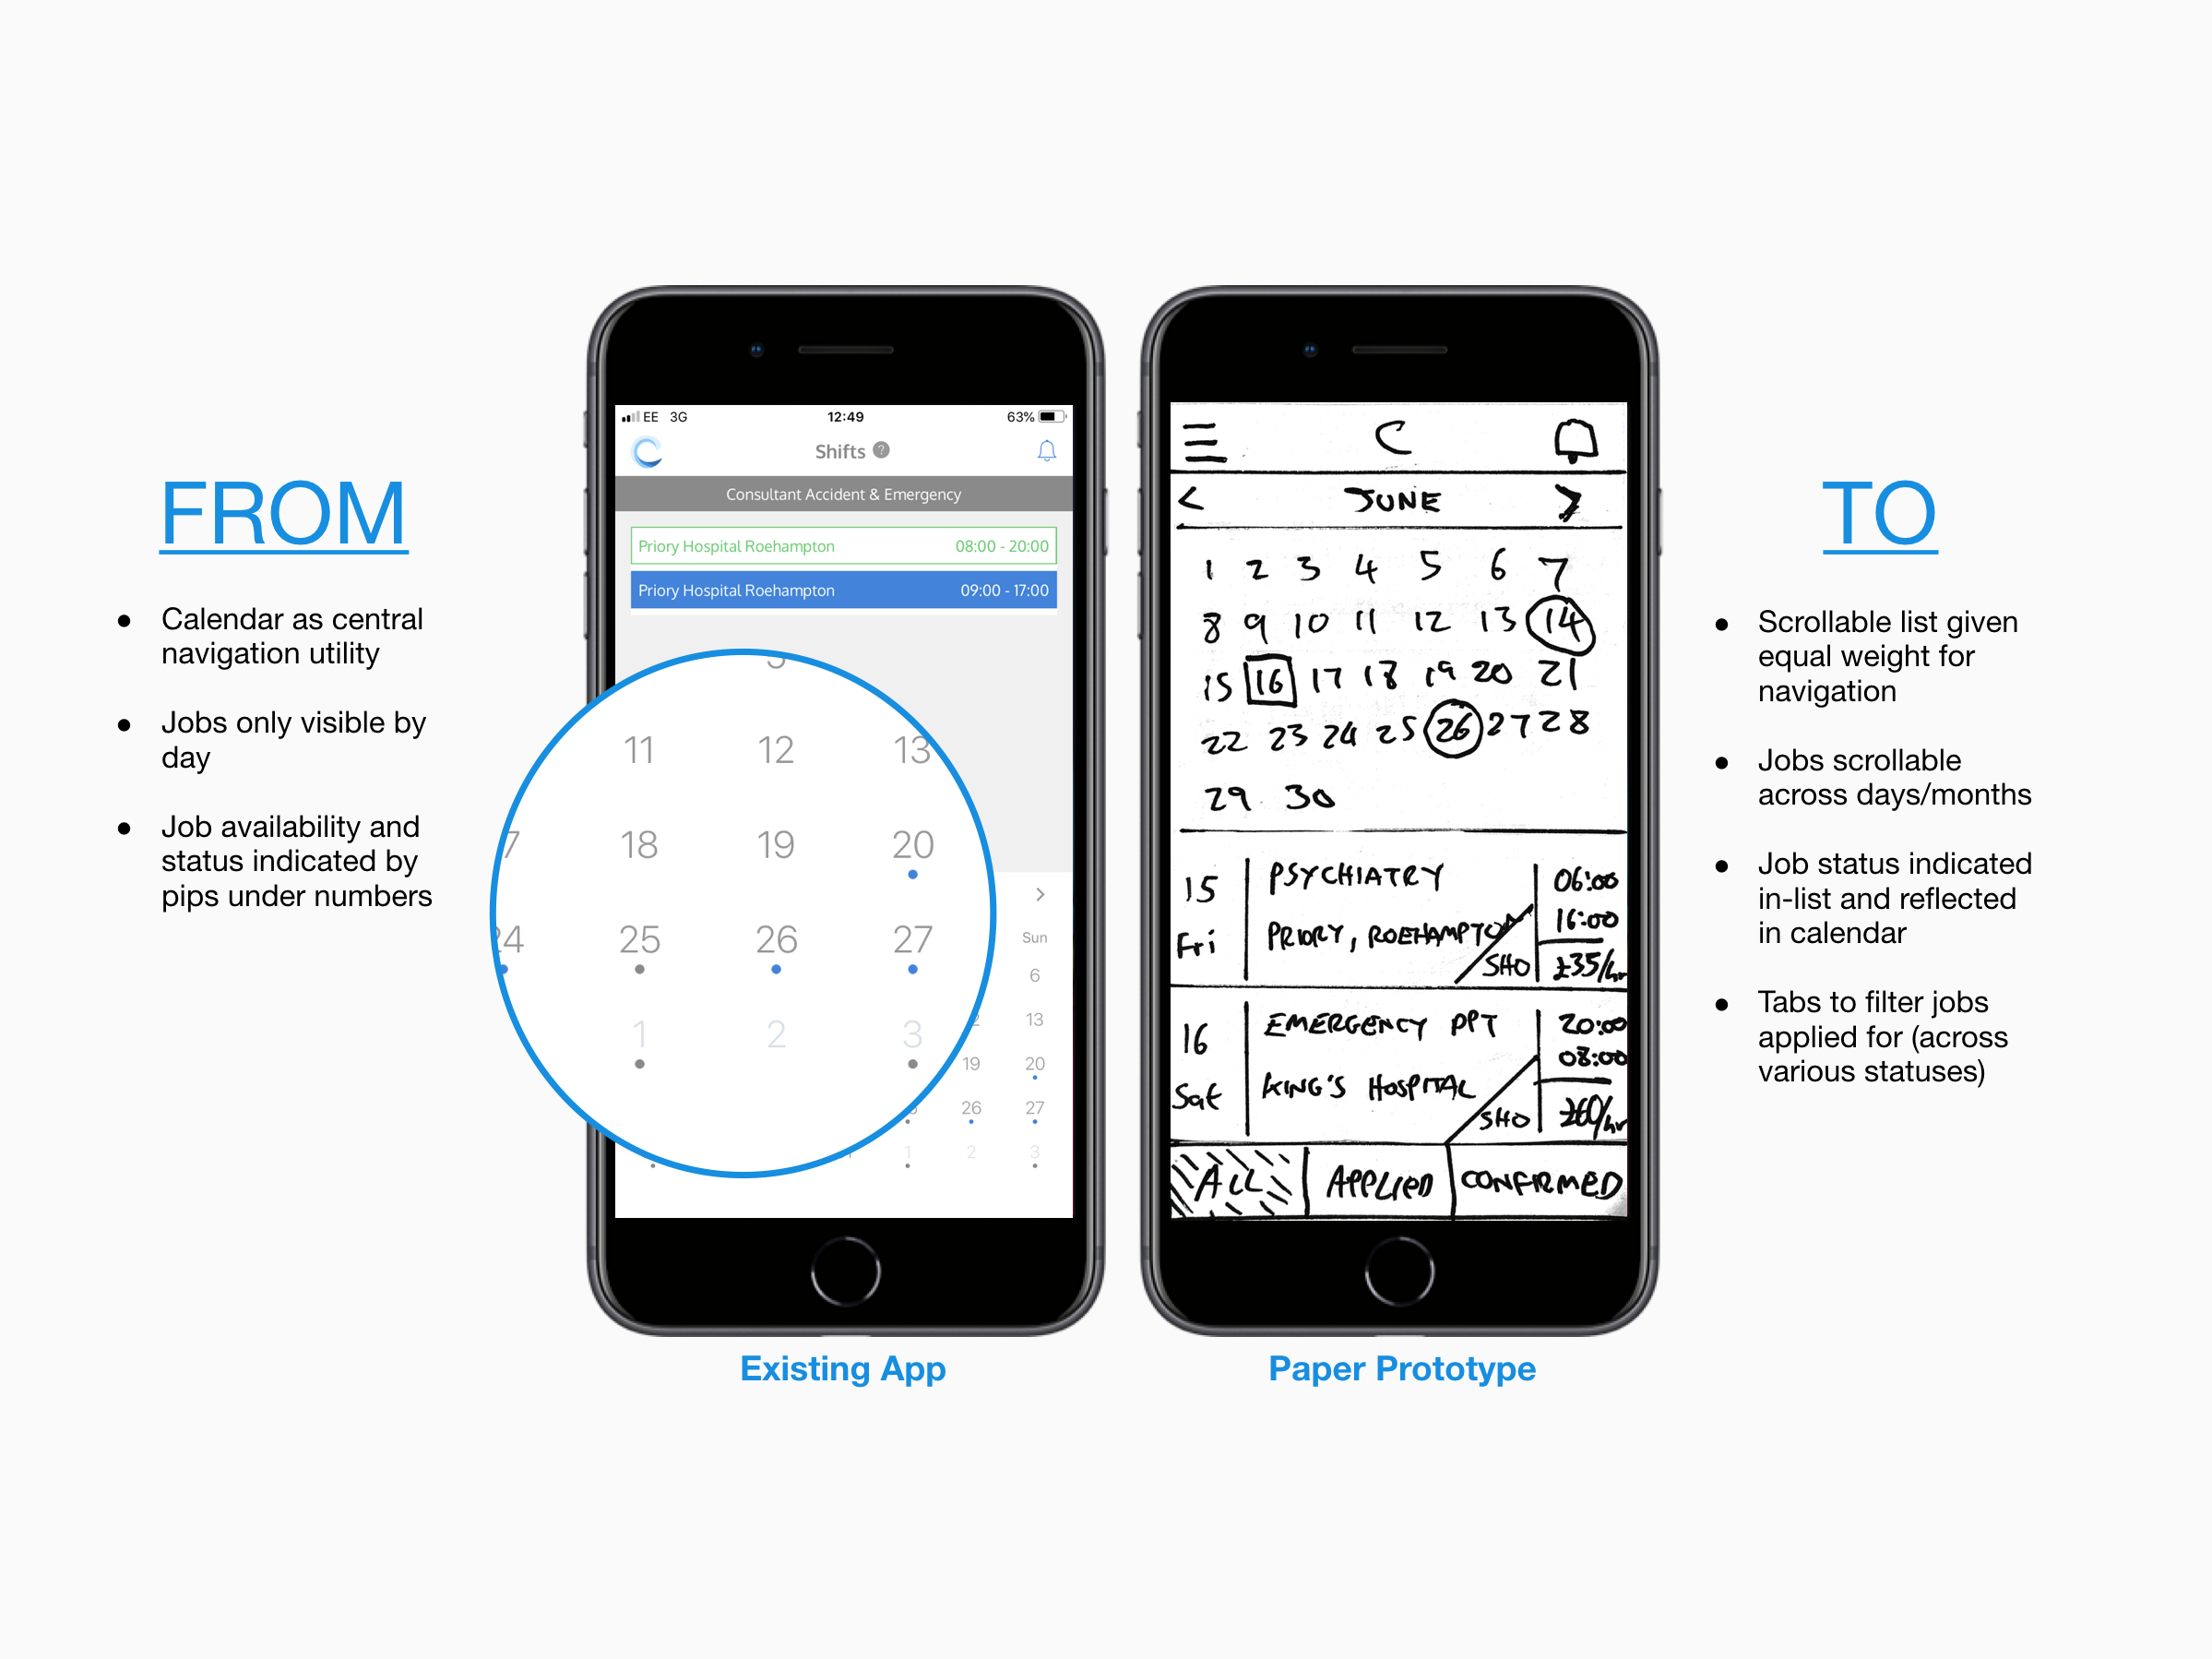 Existing app screen next to a paper prototype screen for the concept Circular Wave iOS app